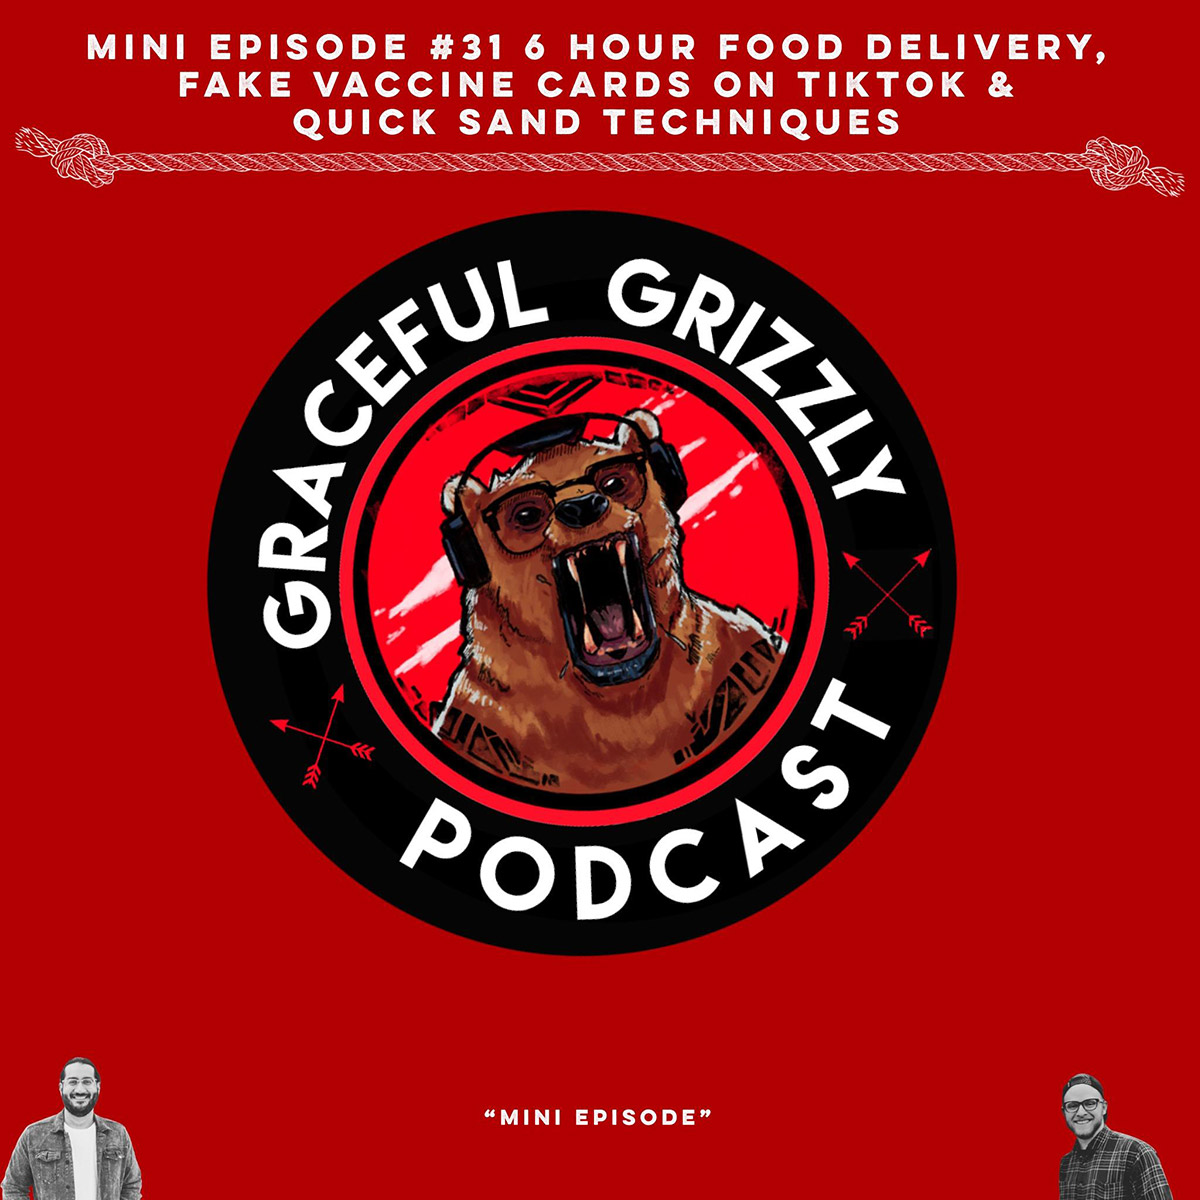 Graceful Grizzly Podcast - Episode 31 - Six Hour Food Delivery, Fake Vaccine Cards on TikTok & Quick Sand Techniques